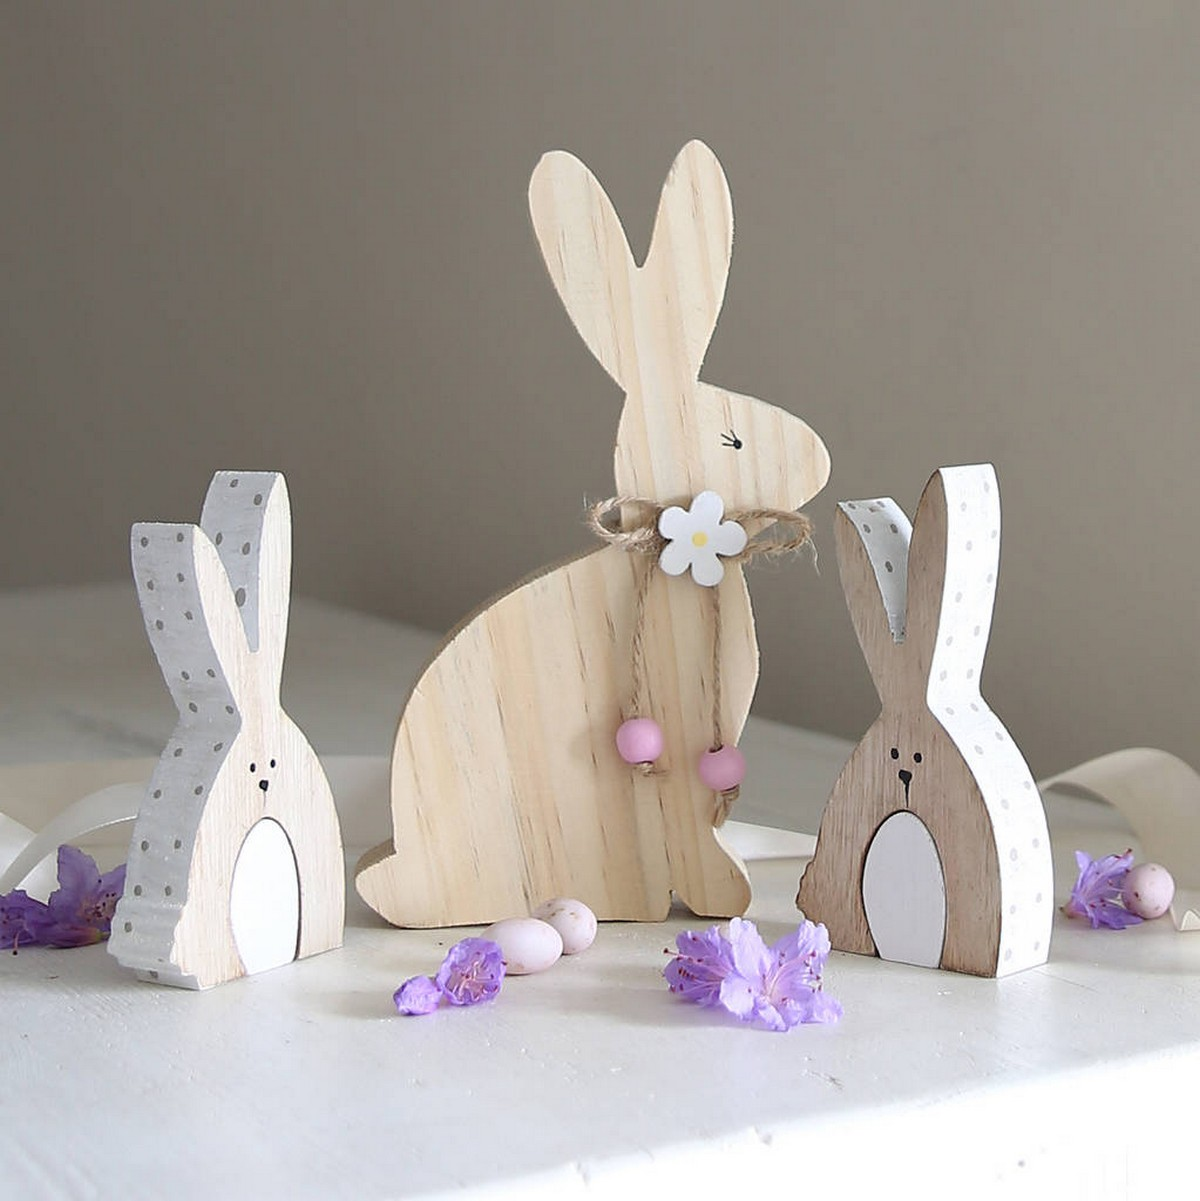 Easter is coming and with it comes visions of warmer weather, spring colors and loads of decorations.